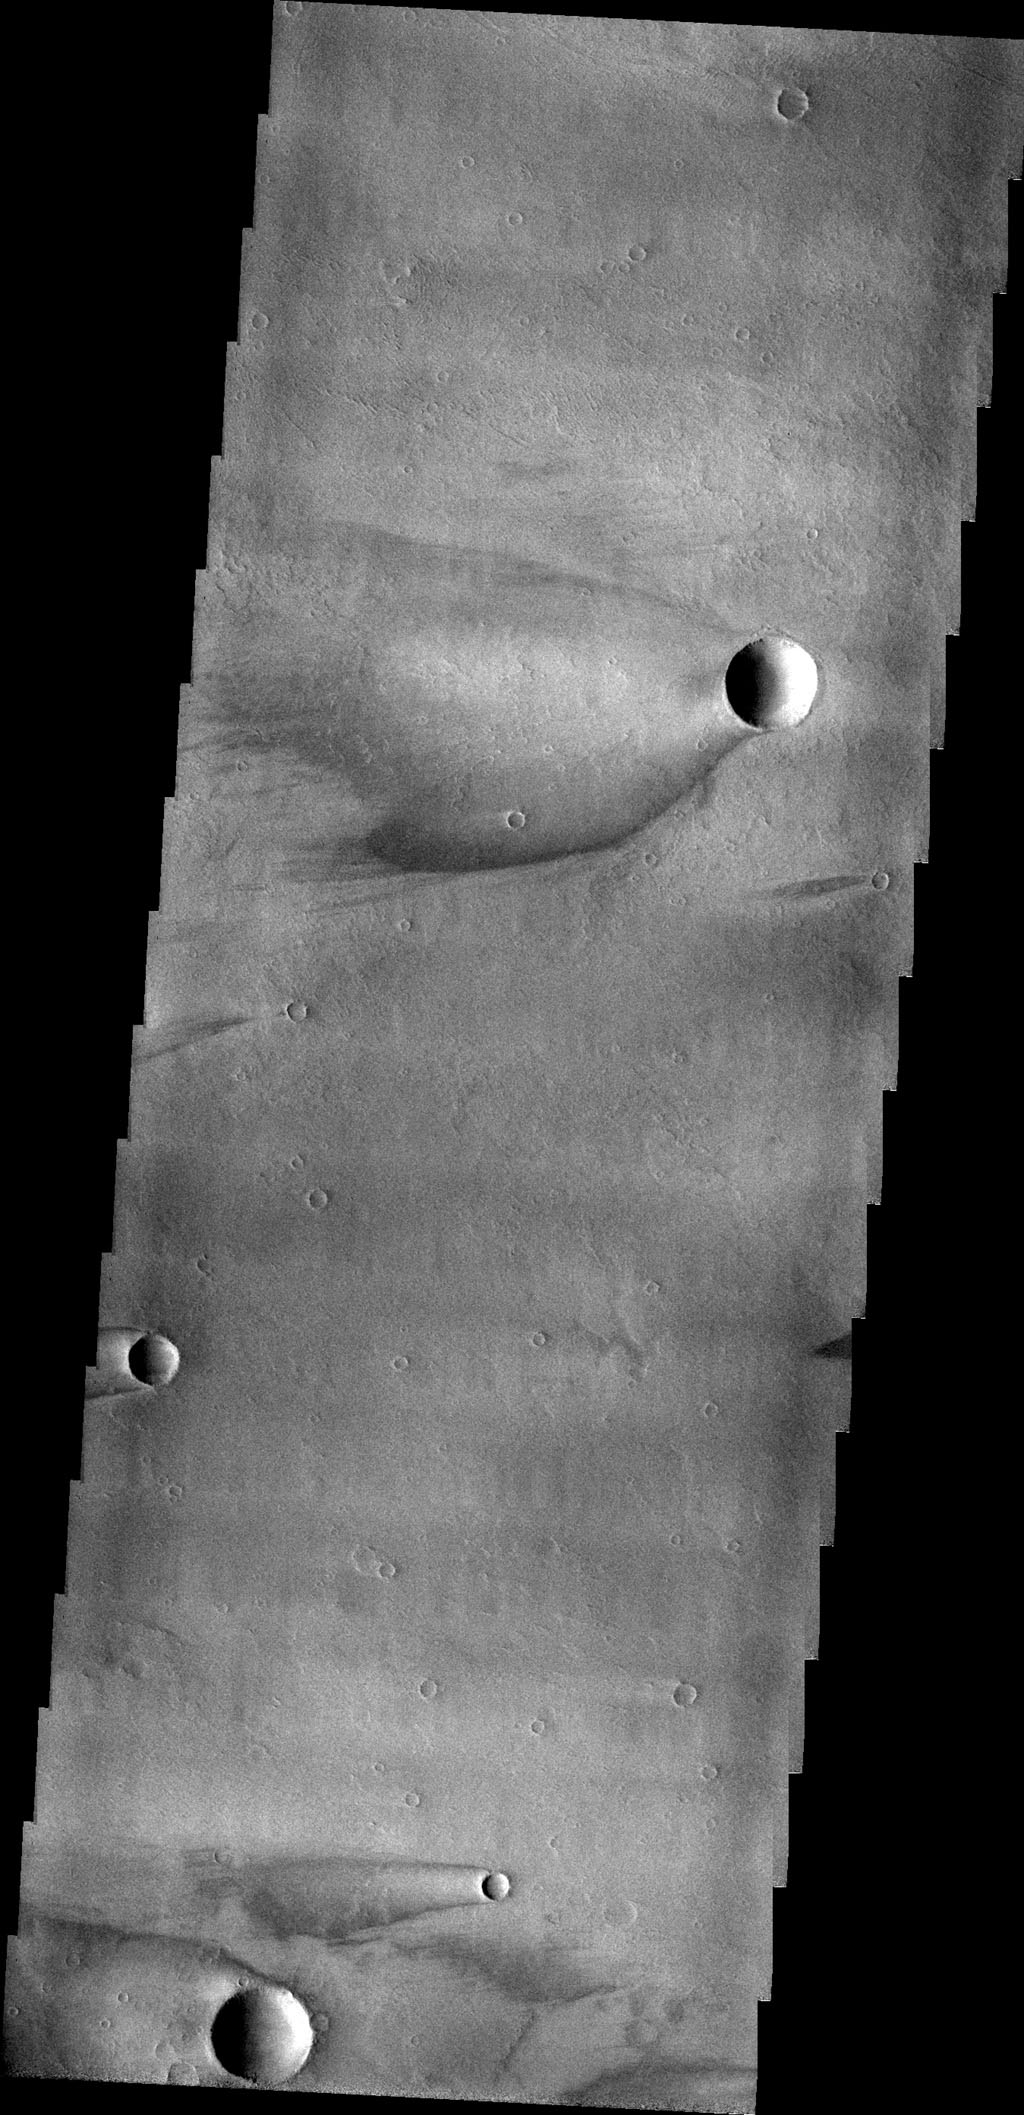 This image captured by NASA's 2001 Mars Odyssey spacecraft show windstreaks found on Daedalia Planum.